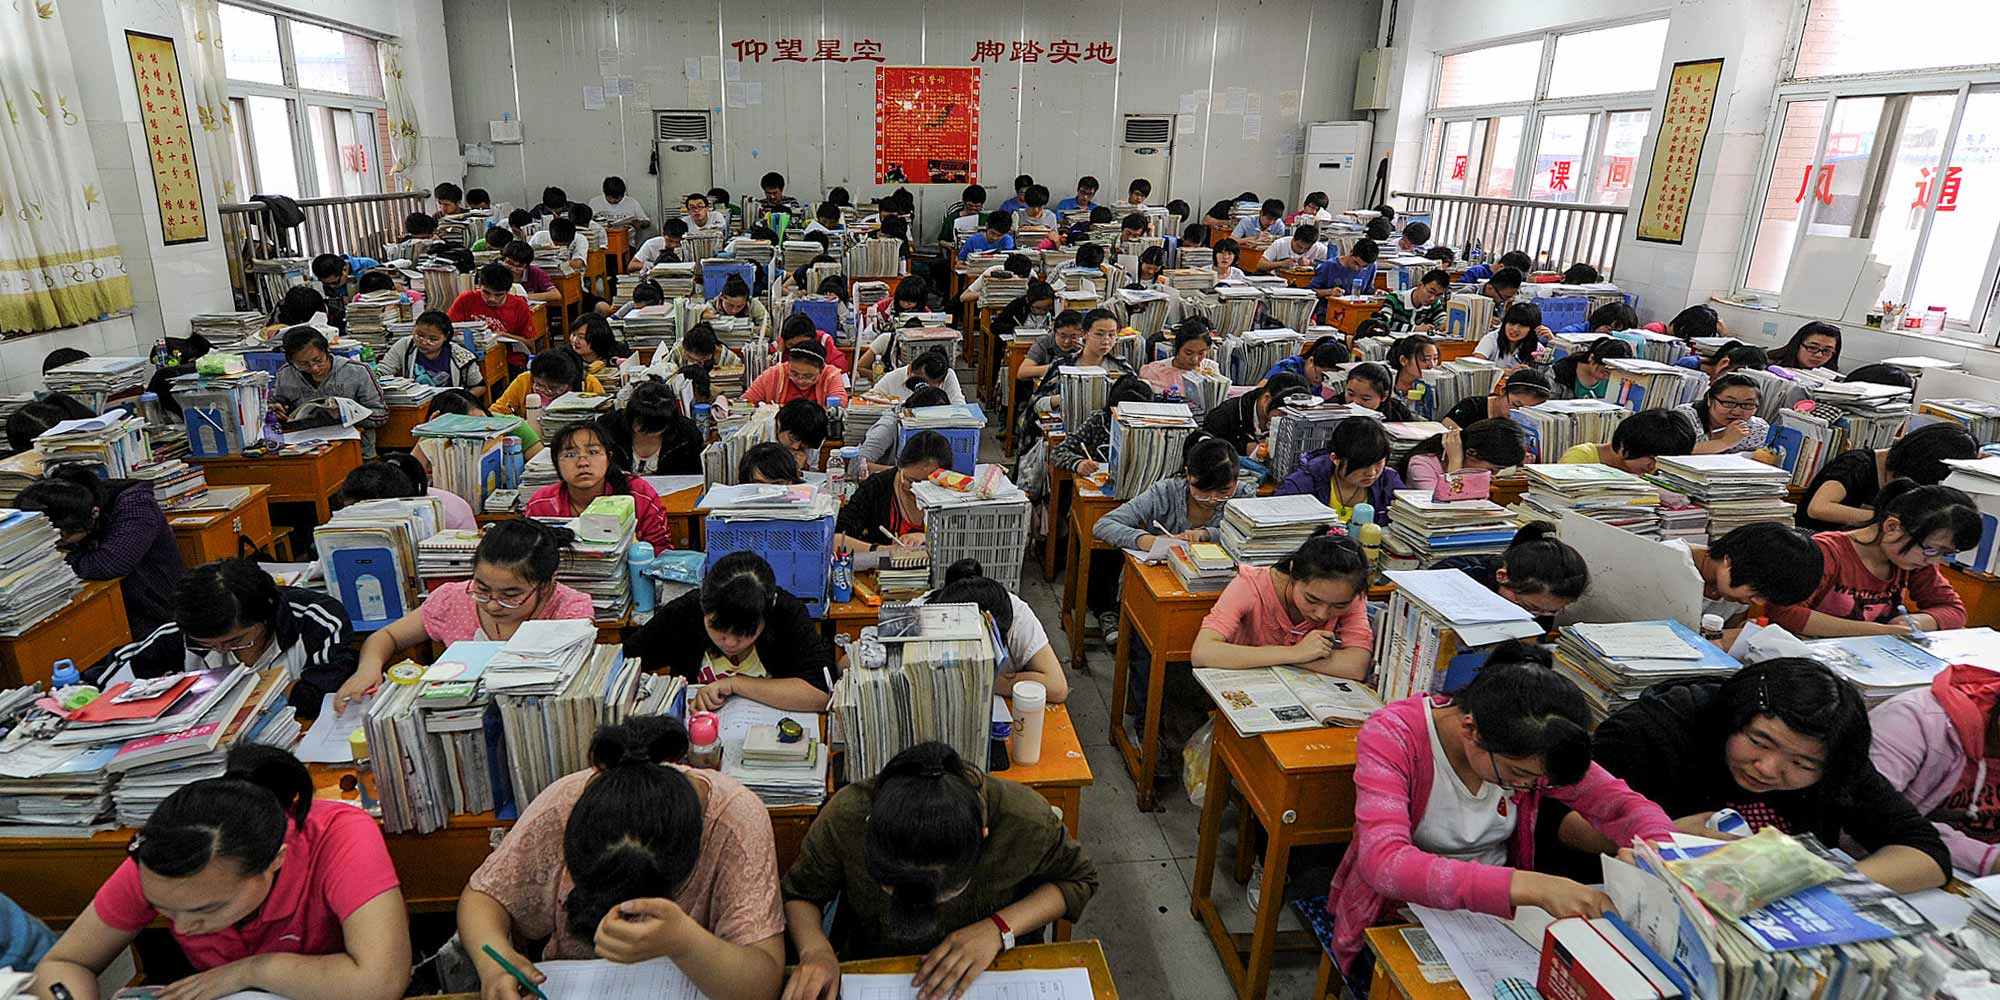 China S Most Crowded School Has 113 Children Per Classroom